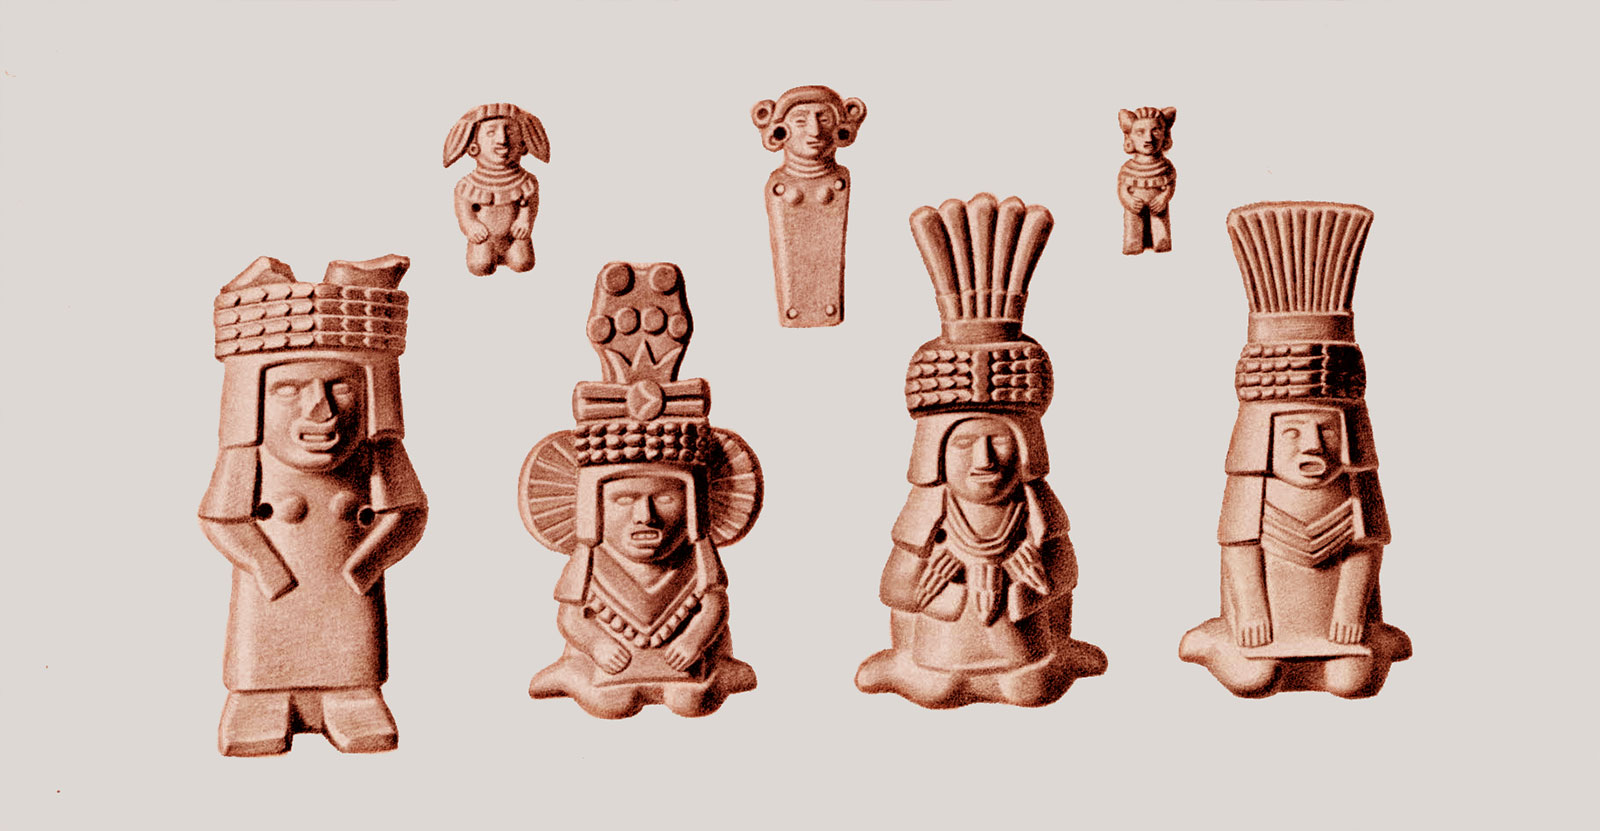 Illustration of two rows of pre-Hispanic ceramic figurines in human shapes with headdresses